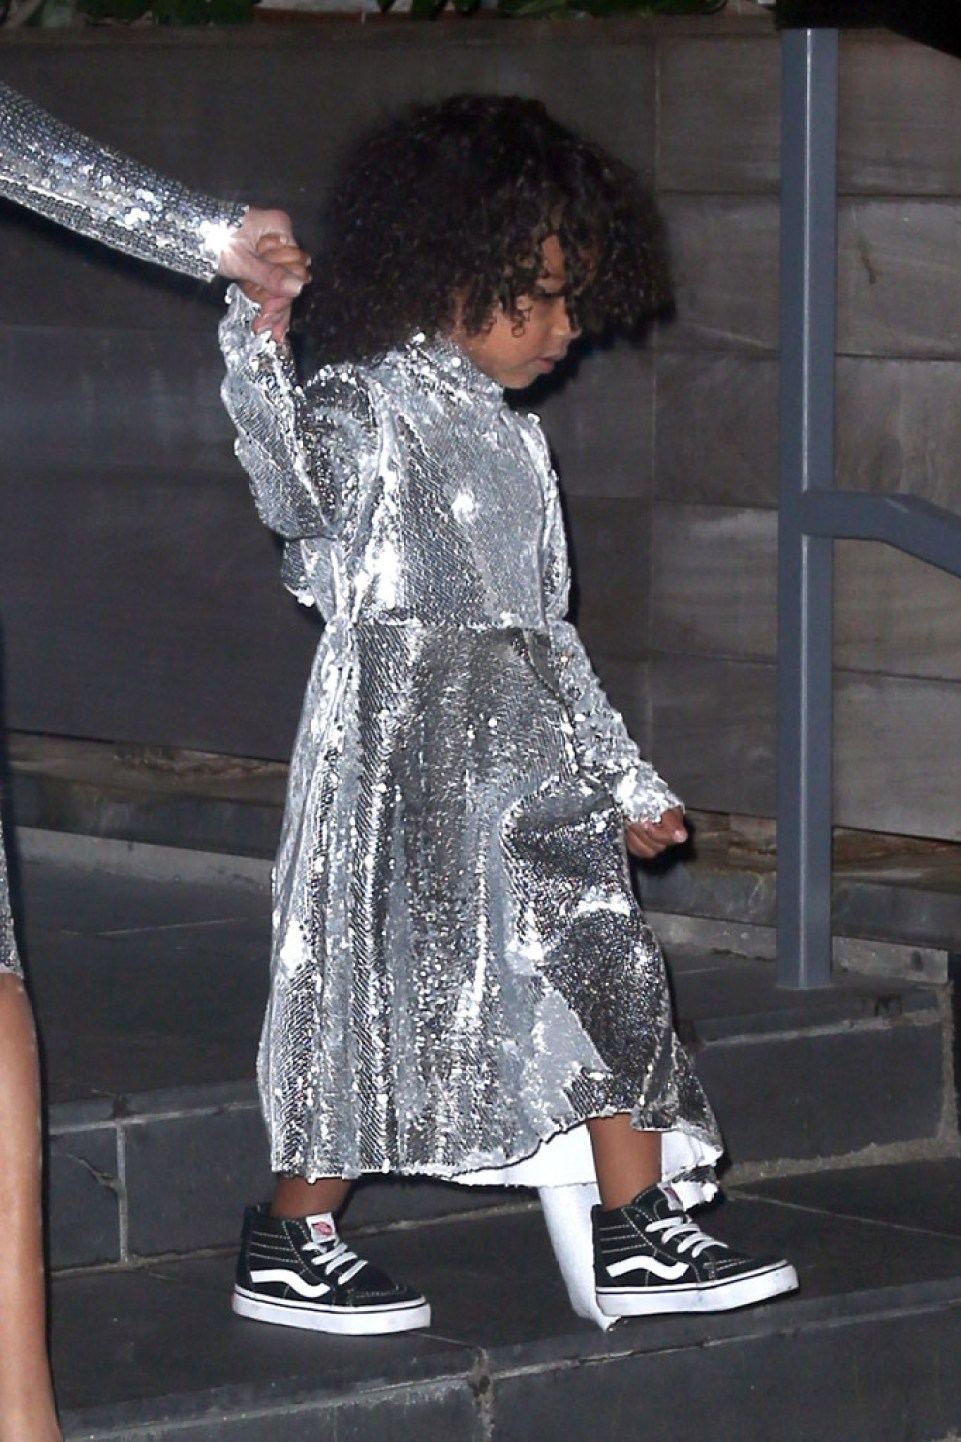 north in vetements